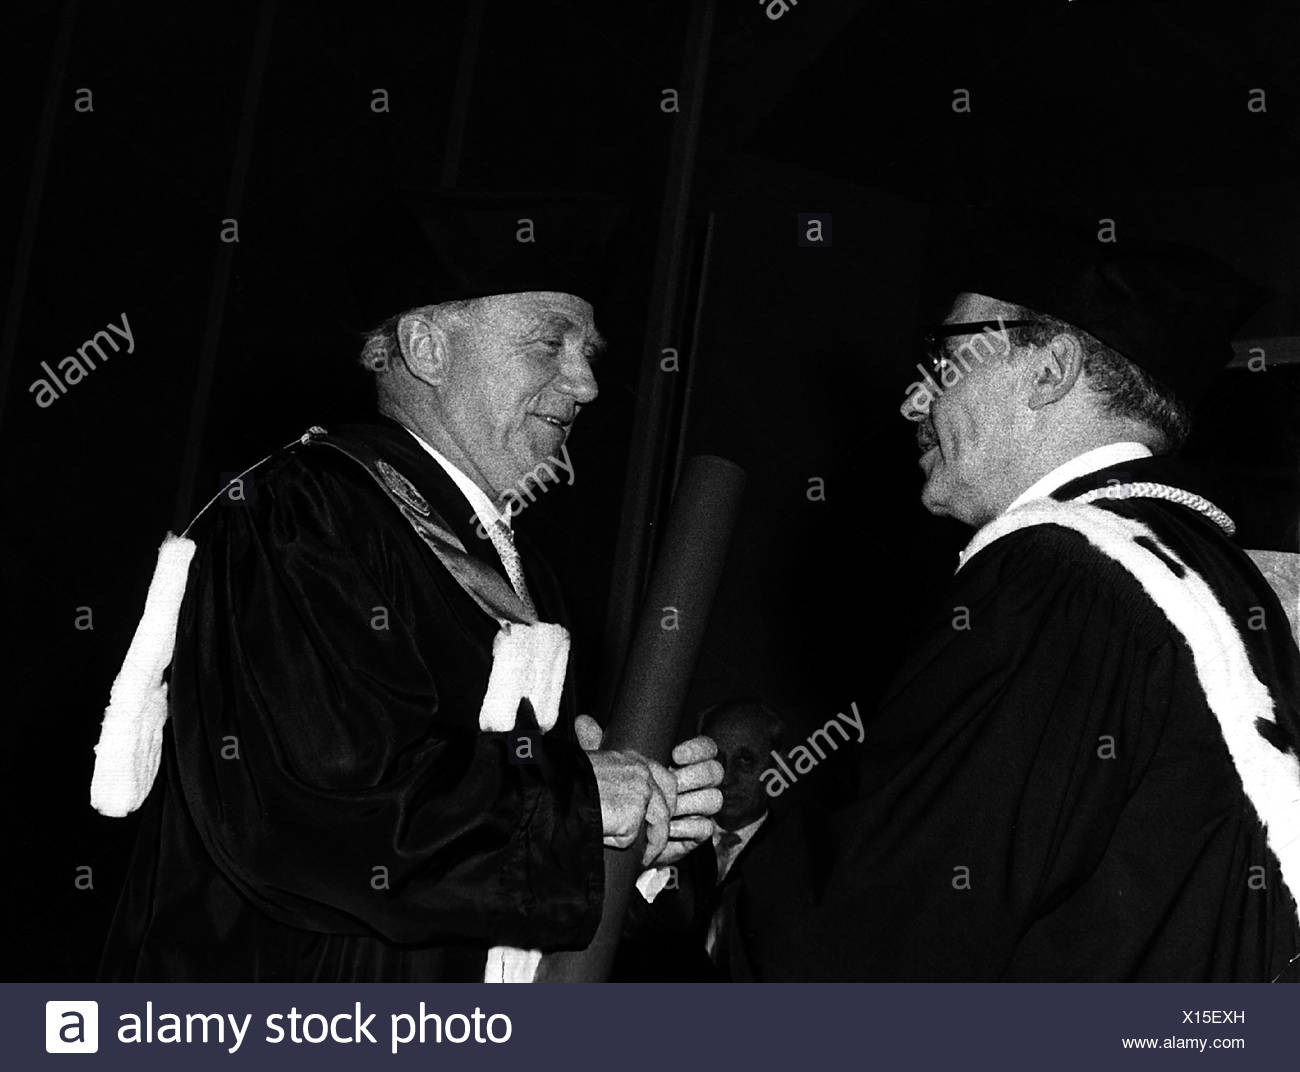 Heisenberg, Werner Karl, 5.12.1901 - 1.2.1976, German physicist, half length, with Walter de Keyser, 1970s, Additional-Rights-Clearances-NA - Stock Image